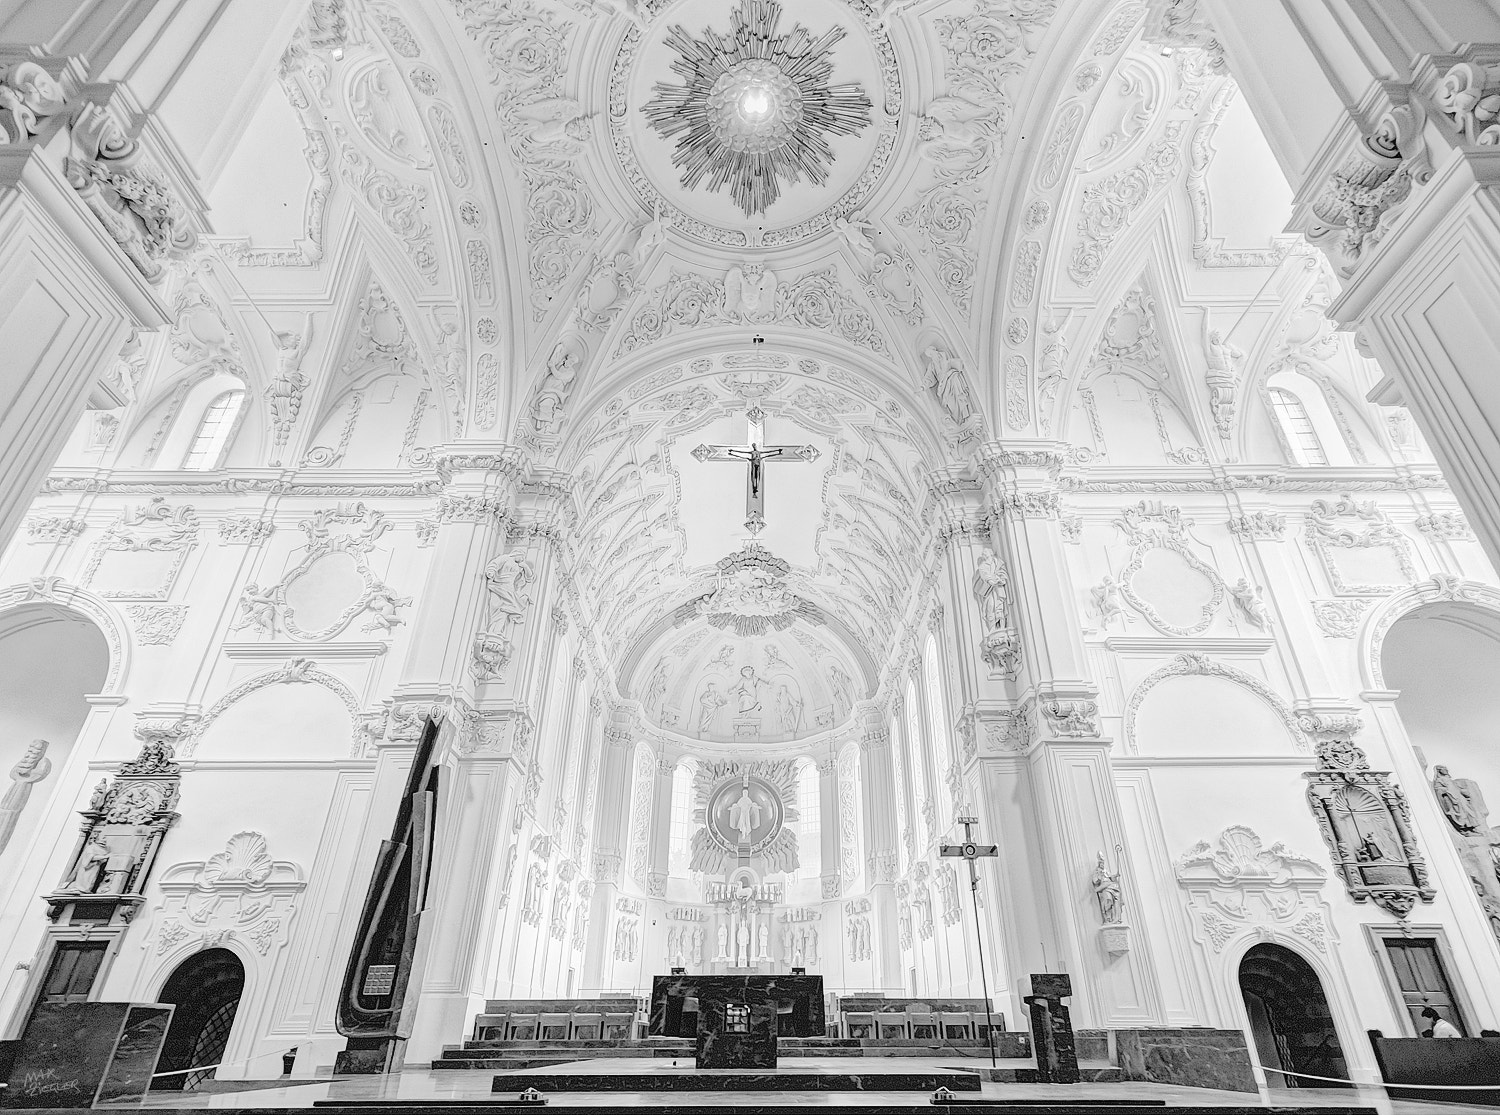 Photograph holy place 03 b&w by Max Ziegler on 500px